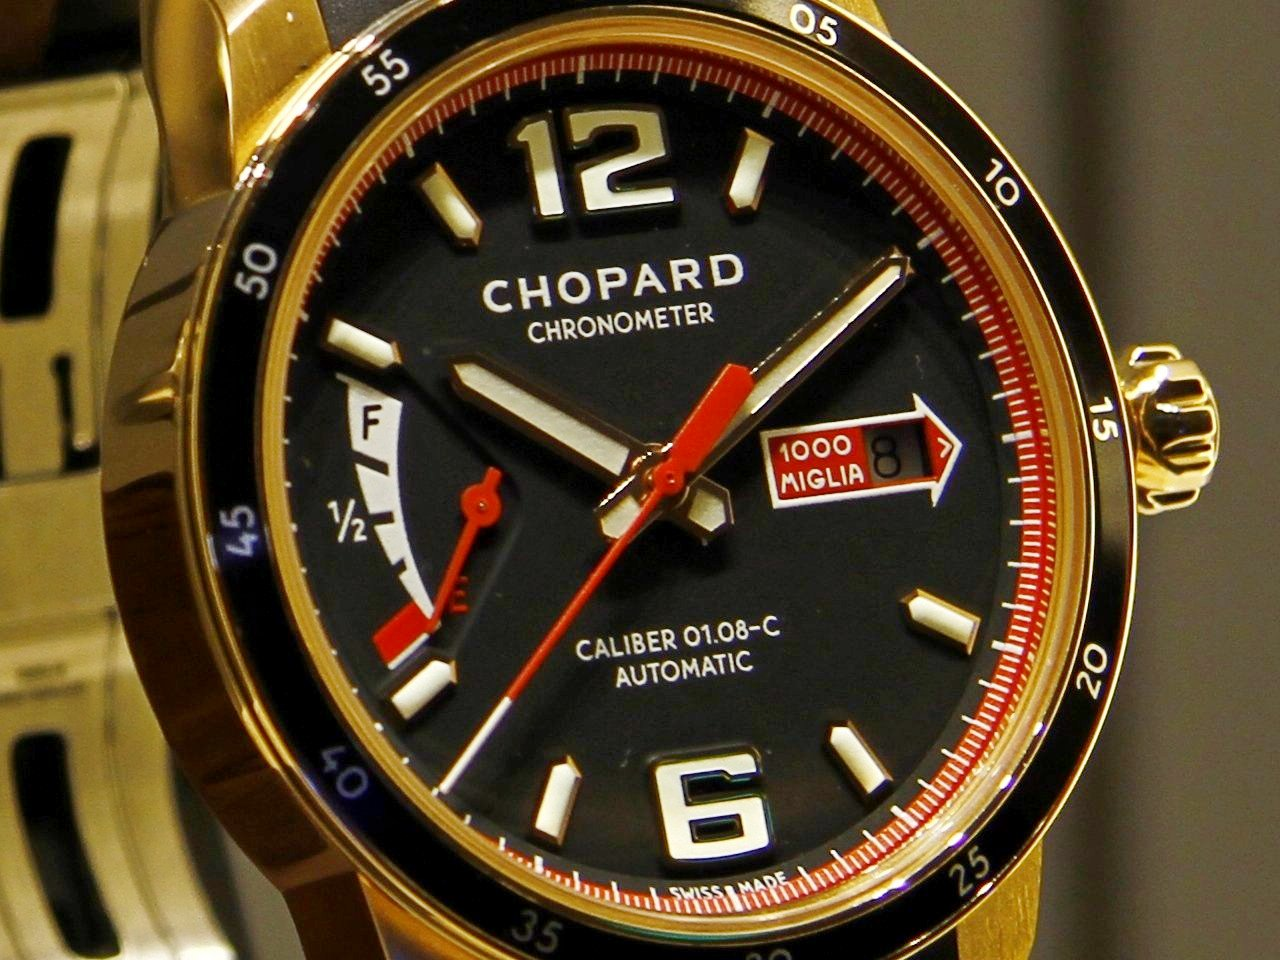 baselworld_2015-chopard-gts-mille-miglia-power-control-0-100_4